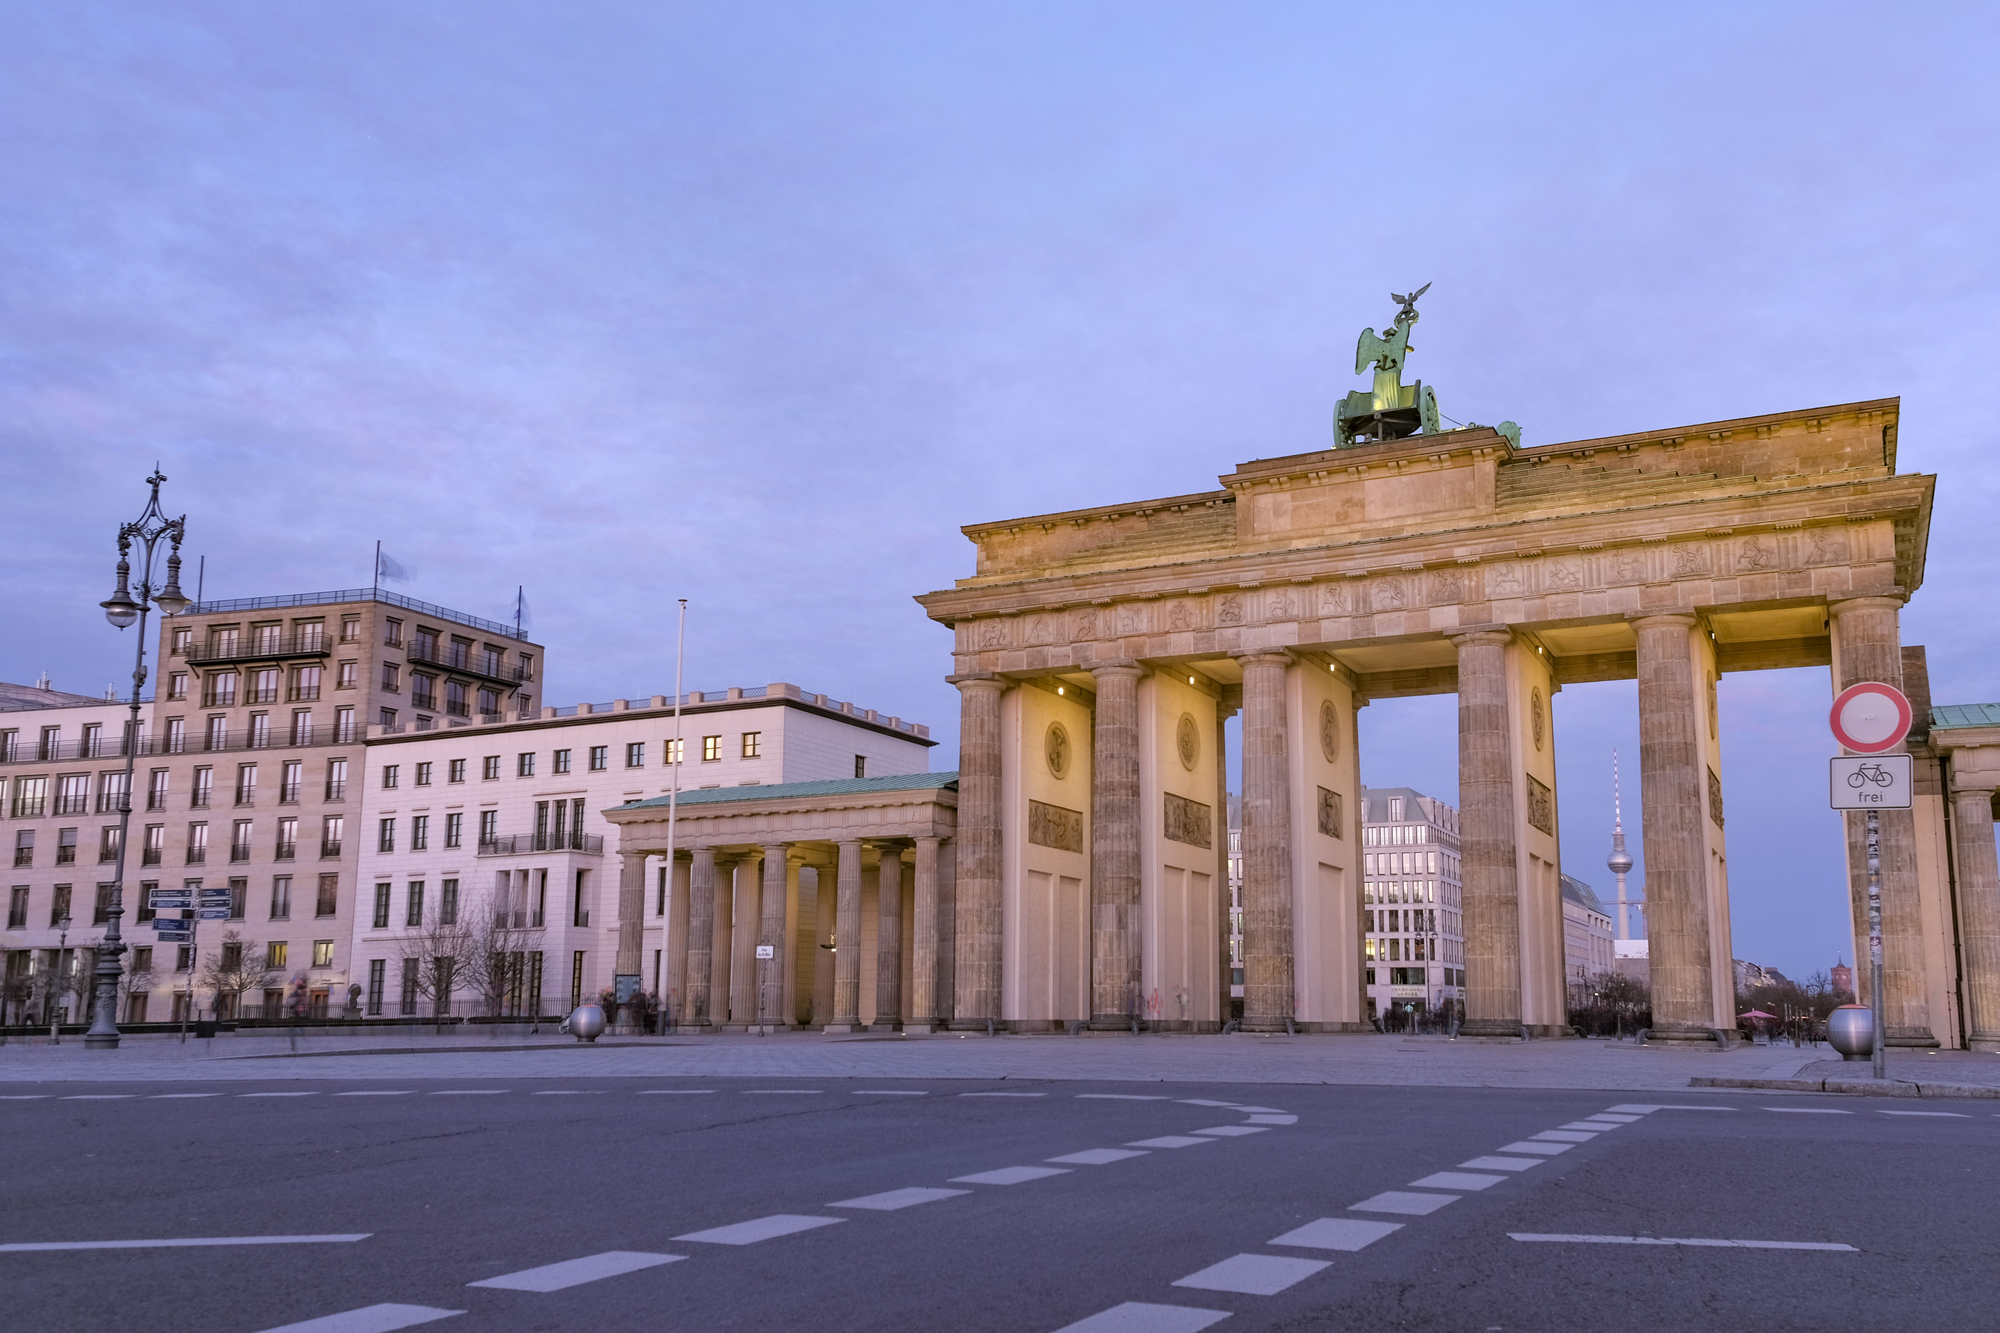 Deserted Berlin - Rush hour at the Brandenburg Gate with no people or cars